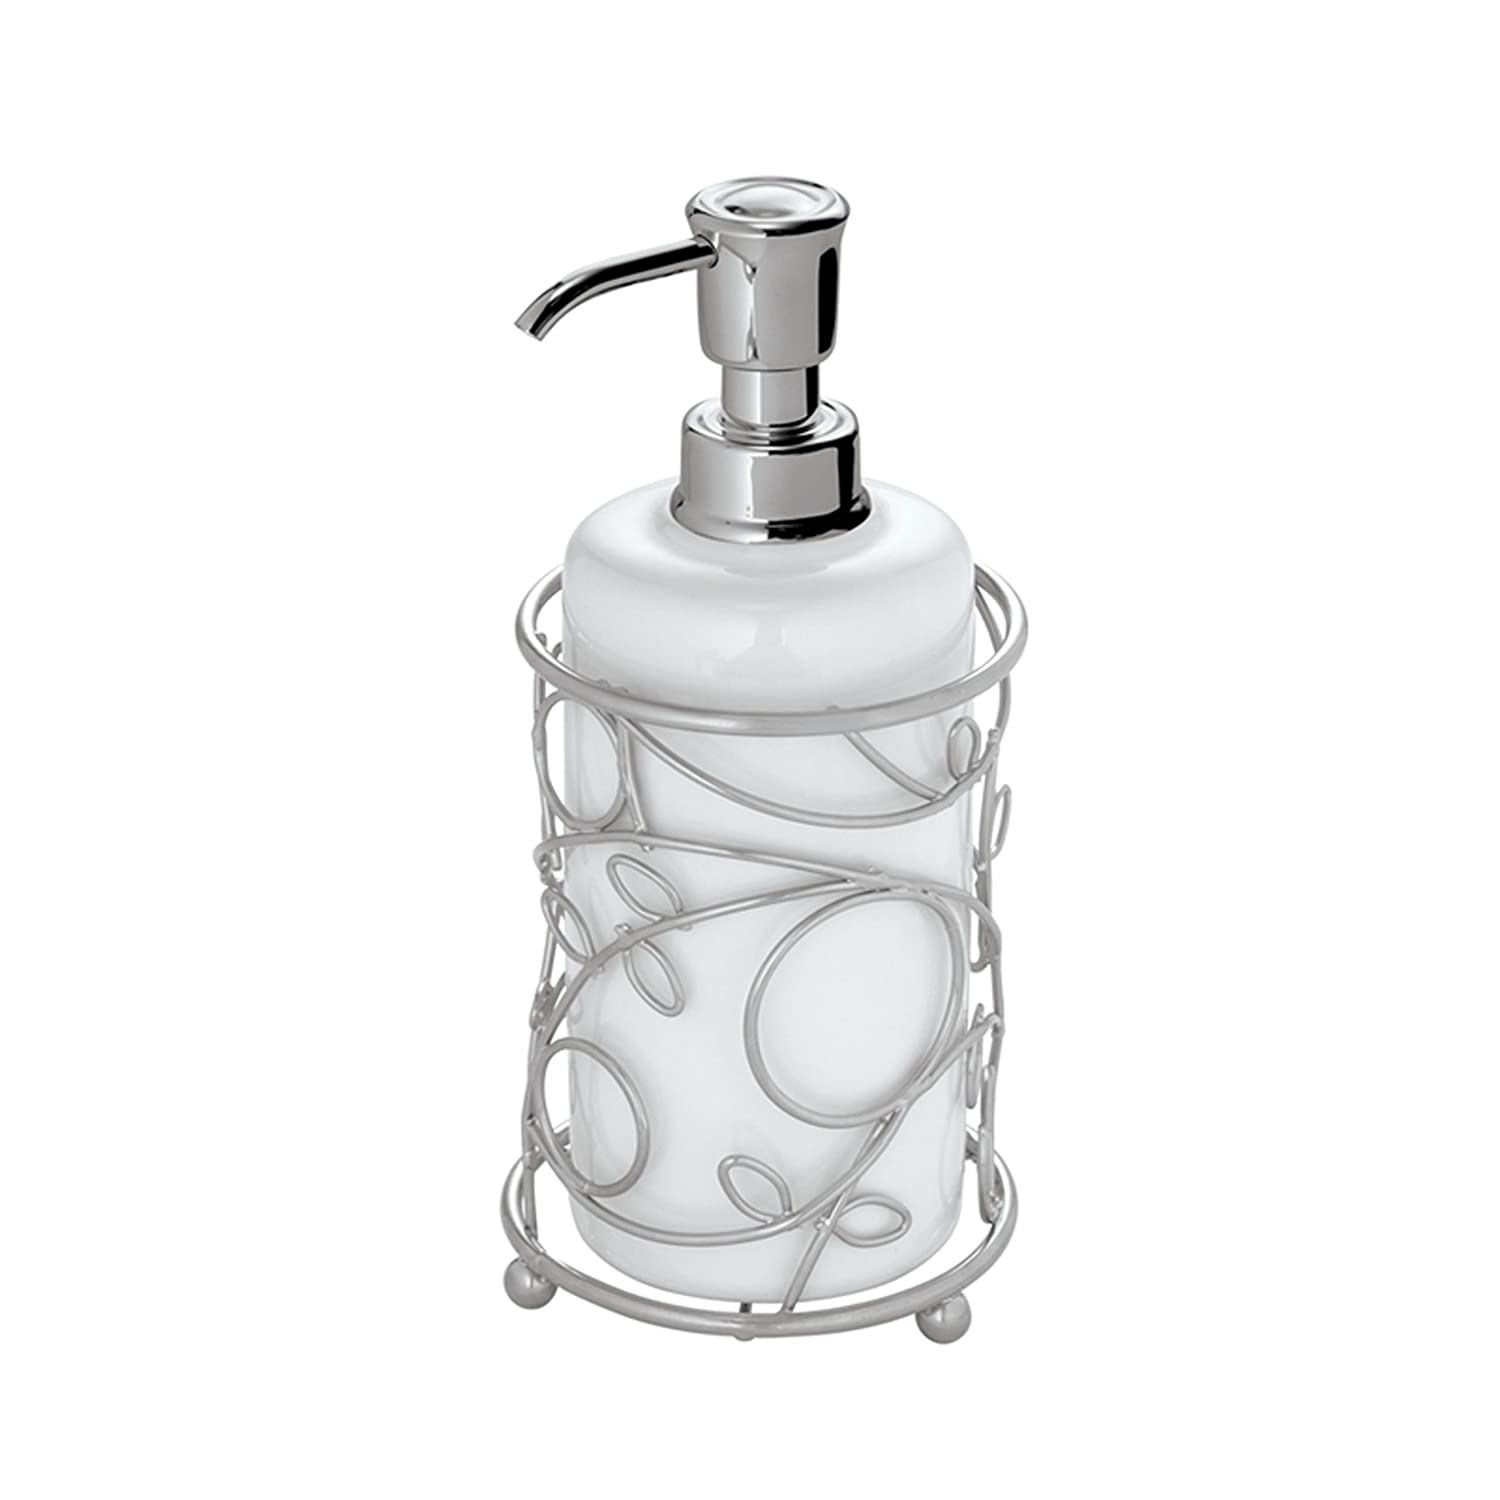 Buy Beautiful Designs of Bathroom Soap Dispenser Buyer s Guide